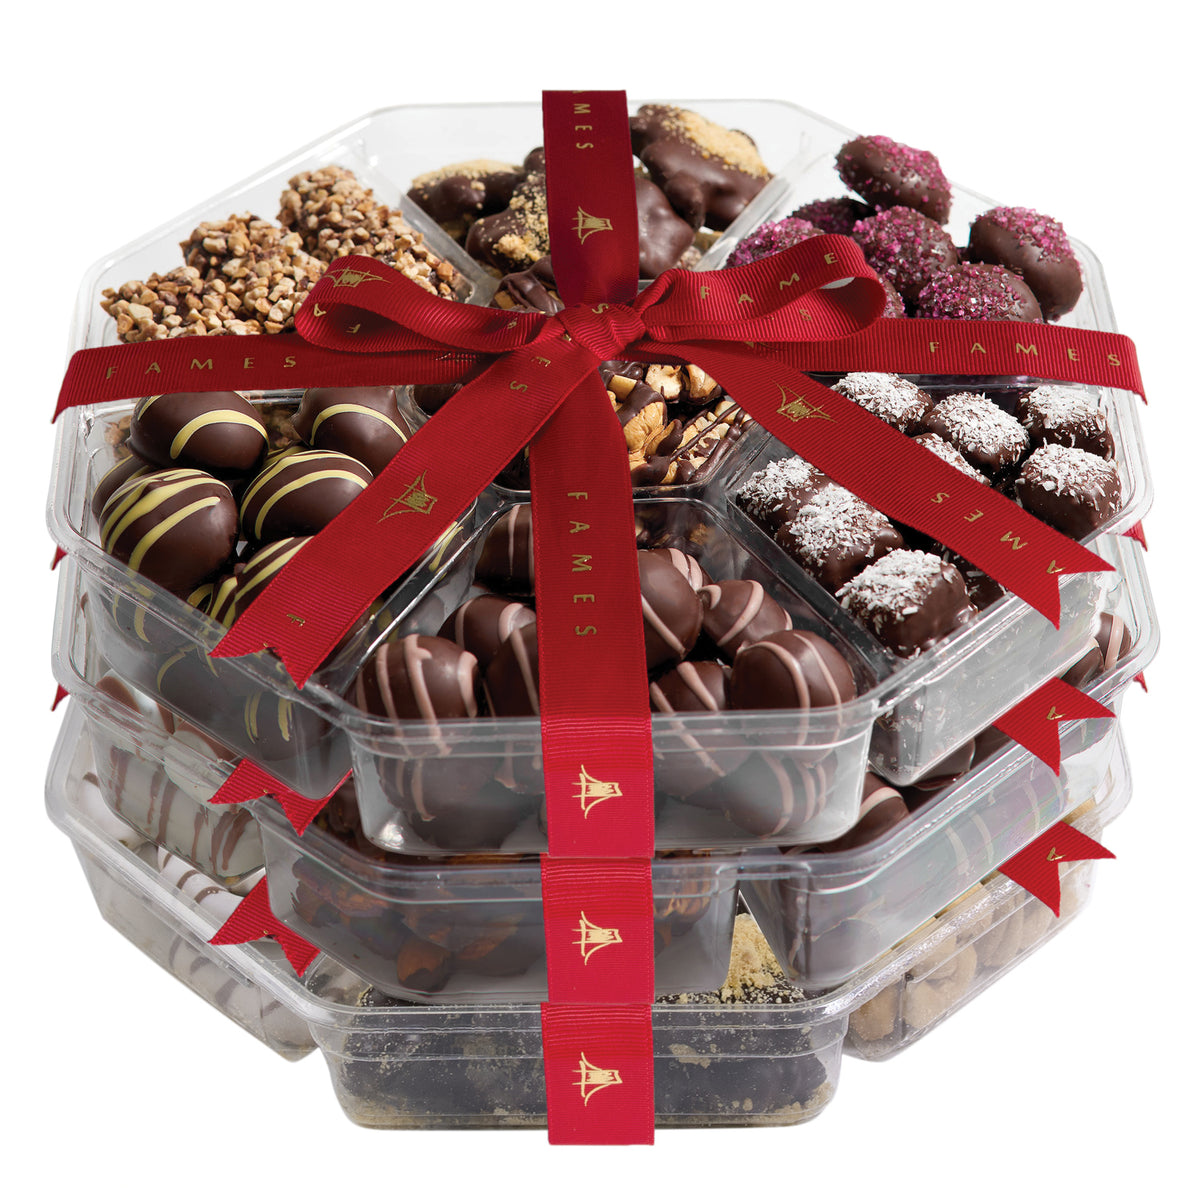 Artsian  Chocolate Gift Set - 8 Lb